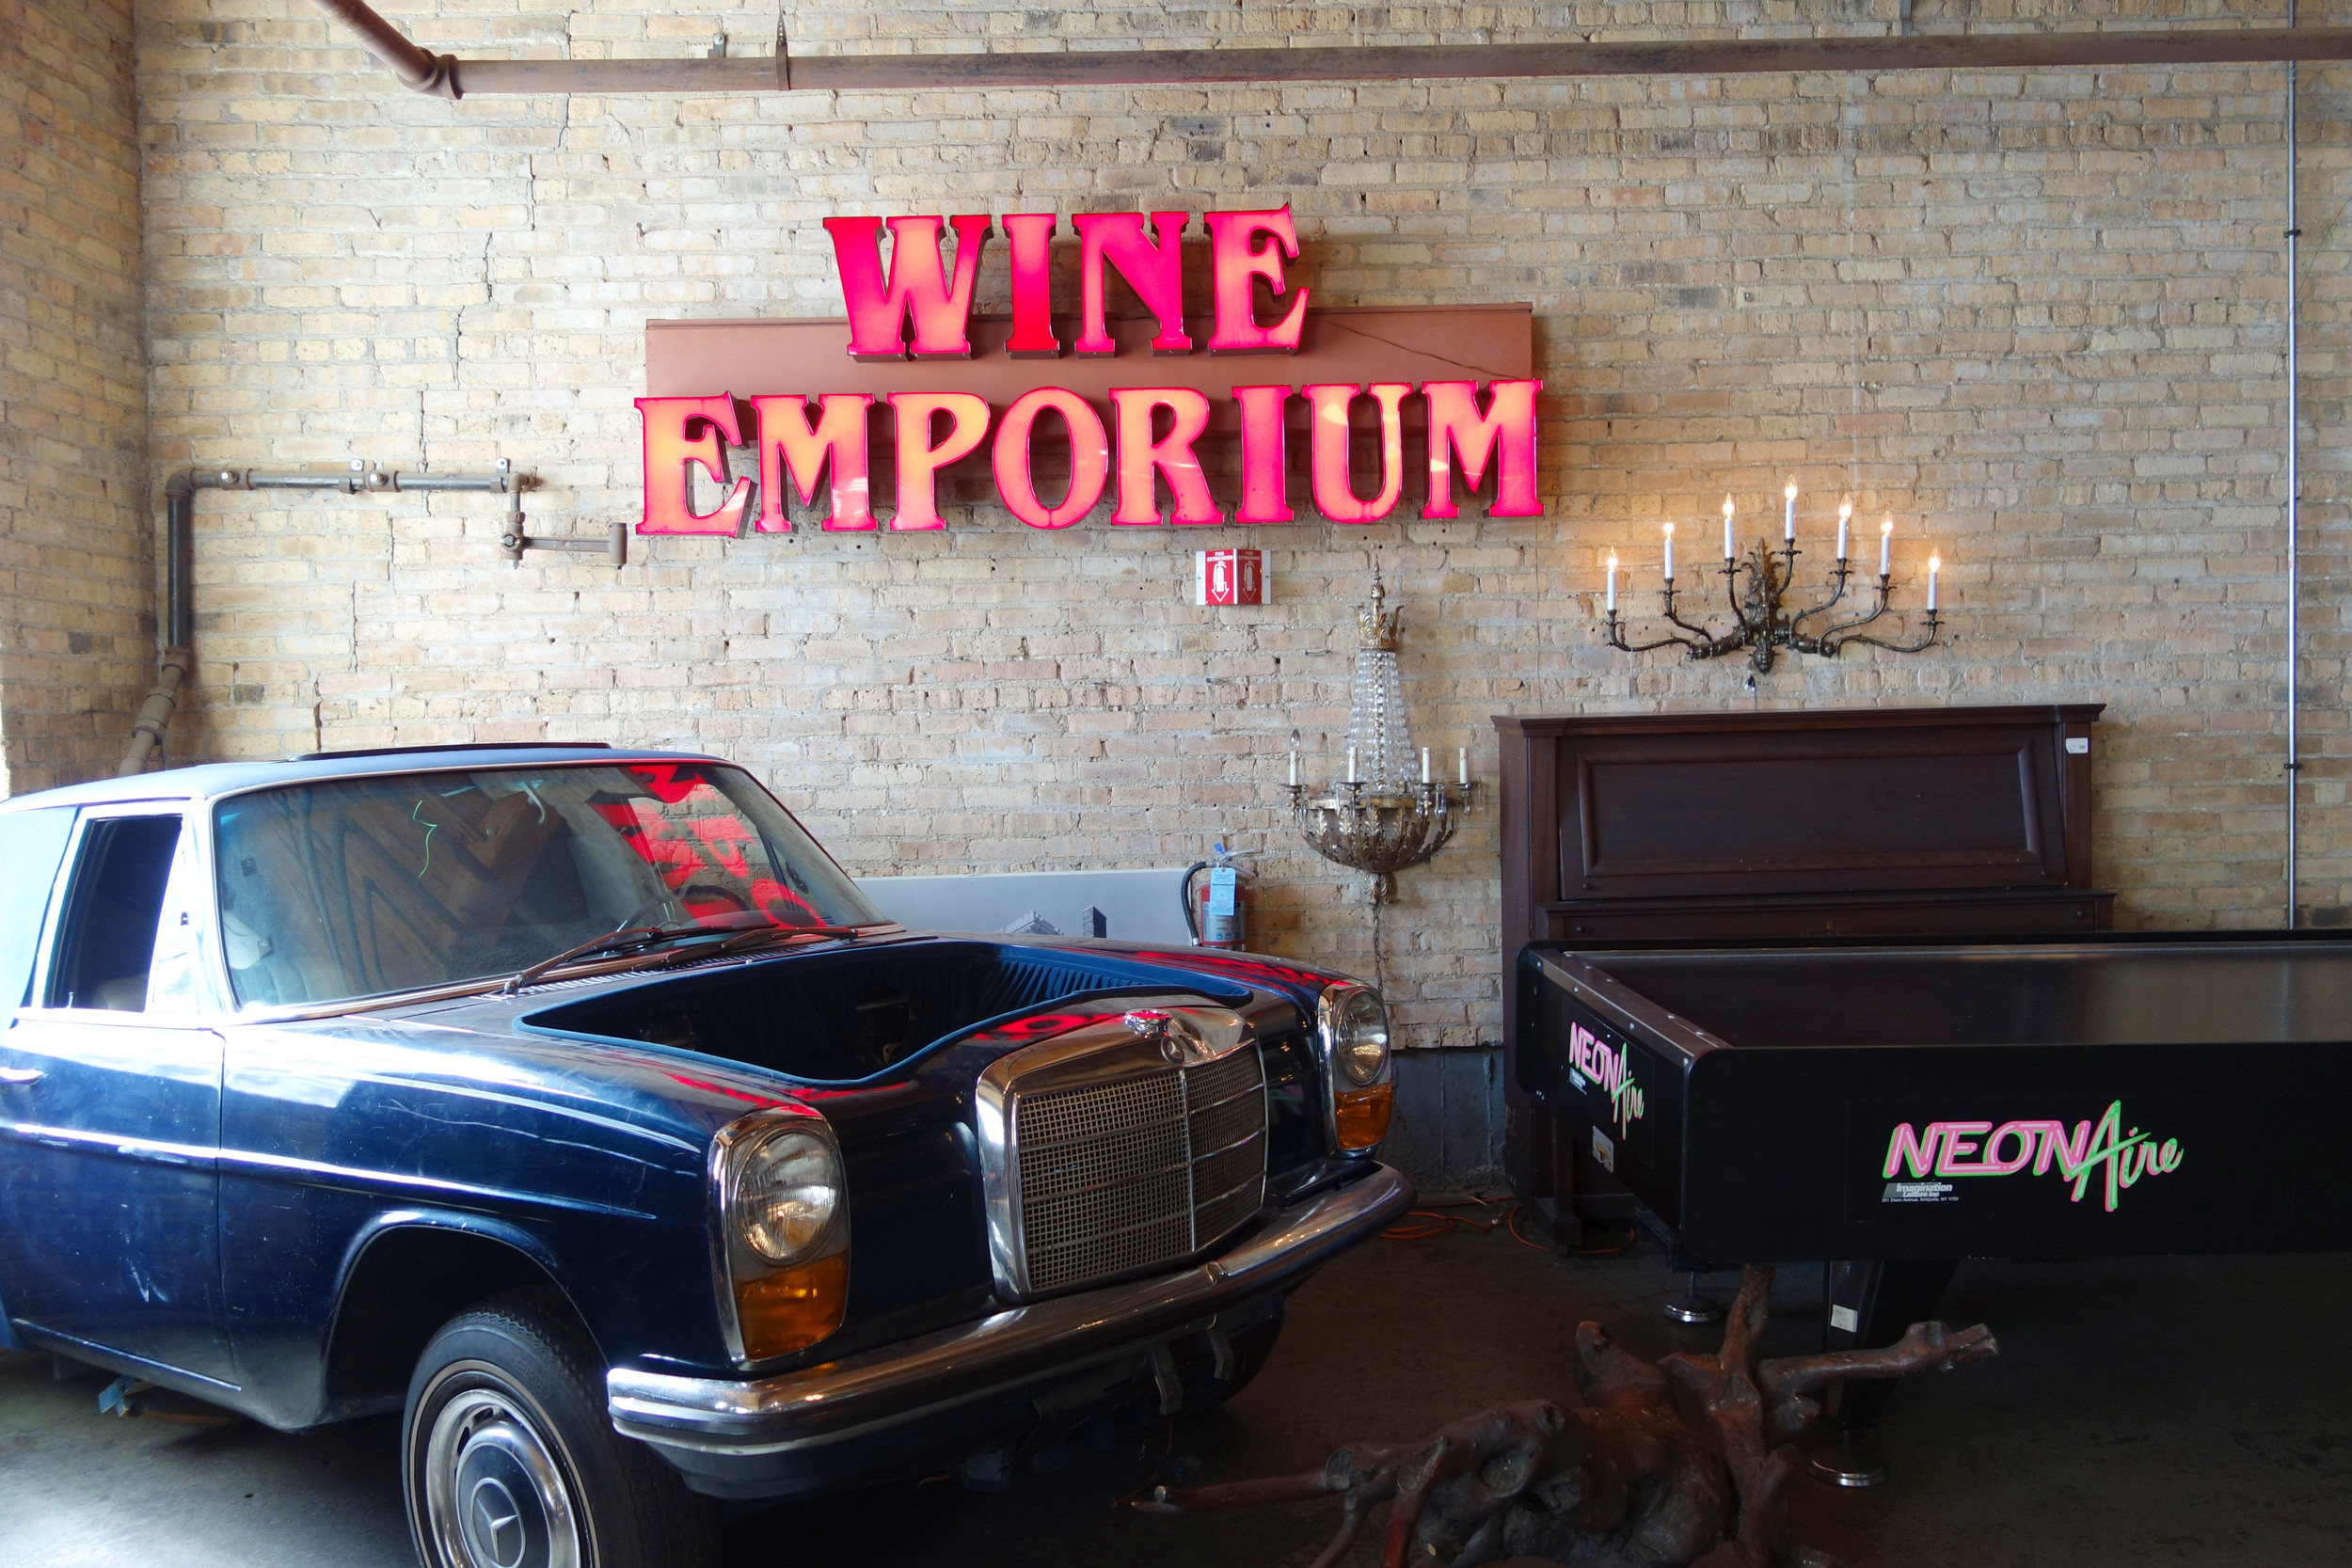 Salvage One has the best vintage treasures! Air hockey table seen here with Wine Emporium sign and classic blue Merdedes-Benz car body!